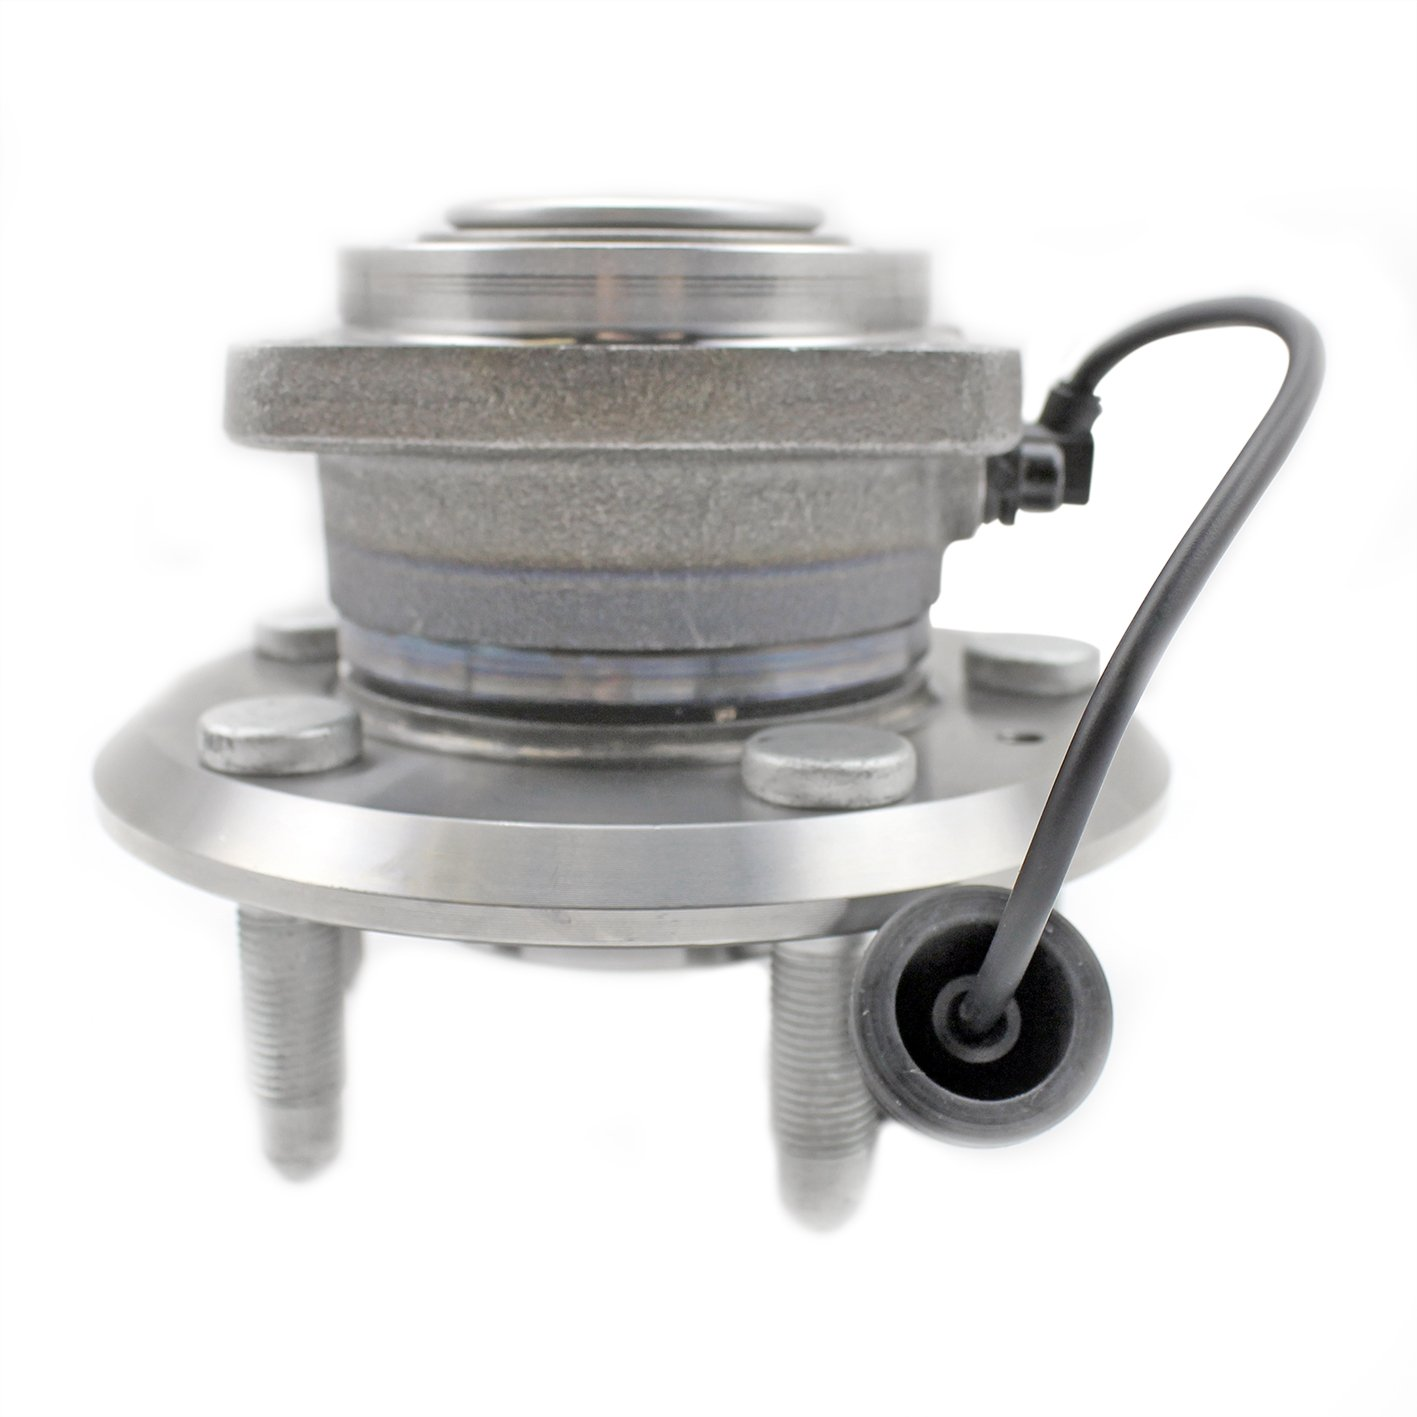 CRS NT930838 New Wheel Bearing Hub Assembly, Rear Left (Driver)/ Right (Passenger), for 2010-2016 Chevy Equinox, 2010-2016 GMC Terrain, FWD/AWD by CRS (Image #5)